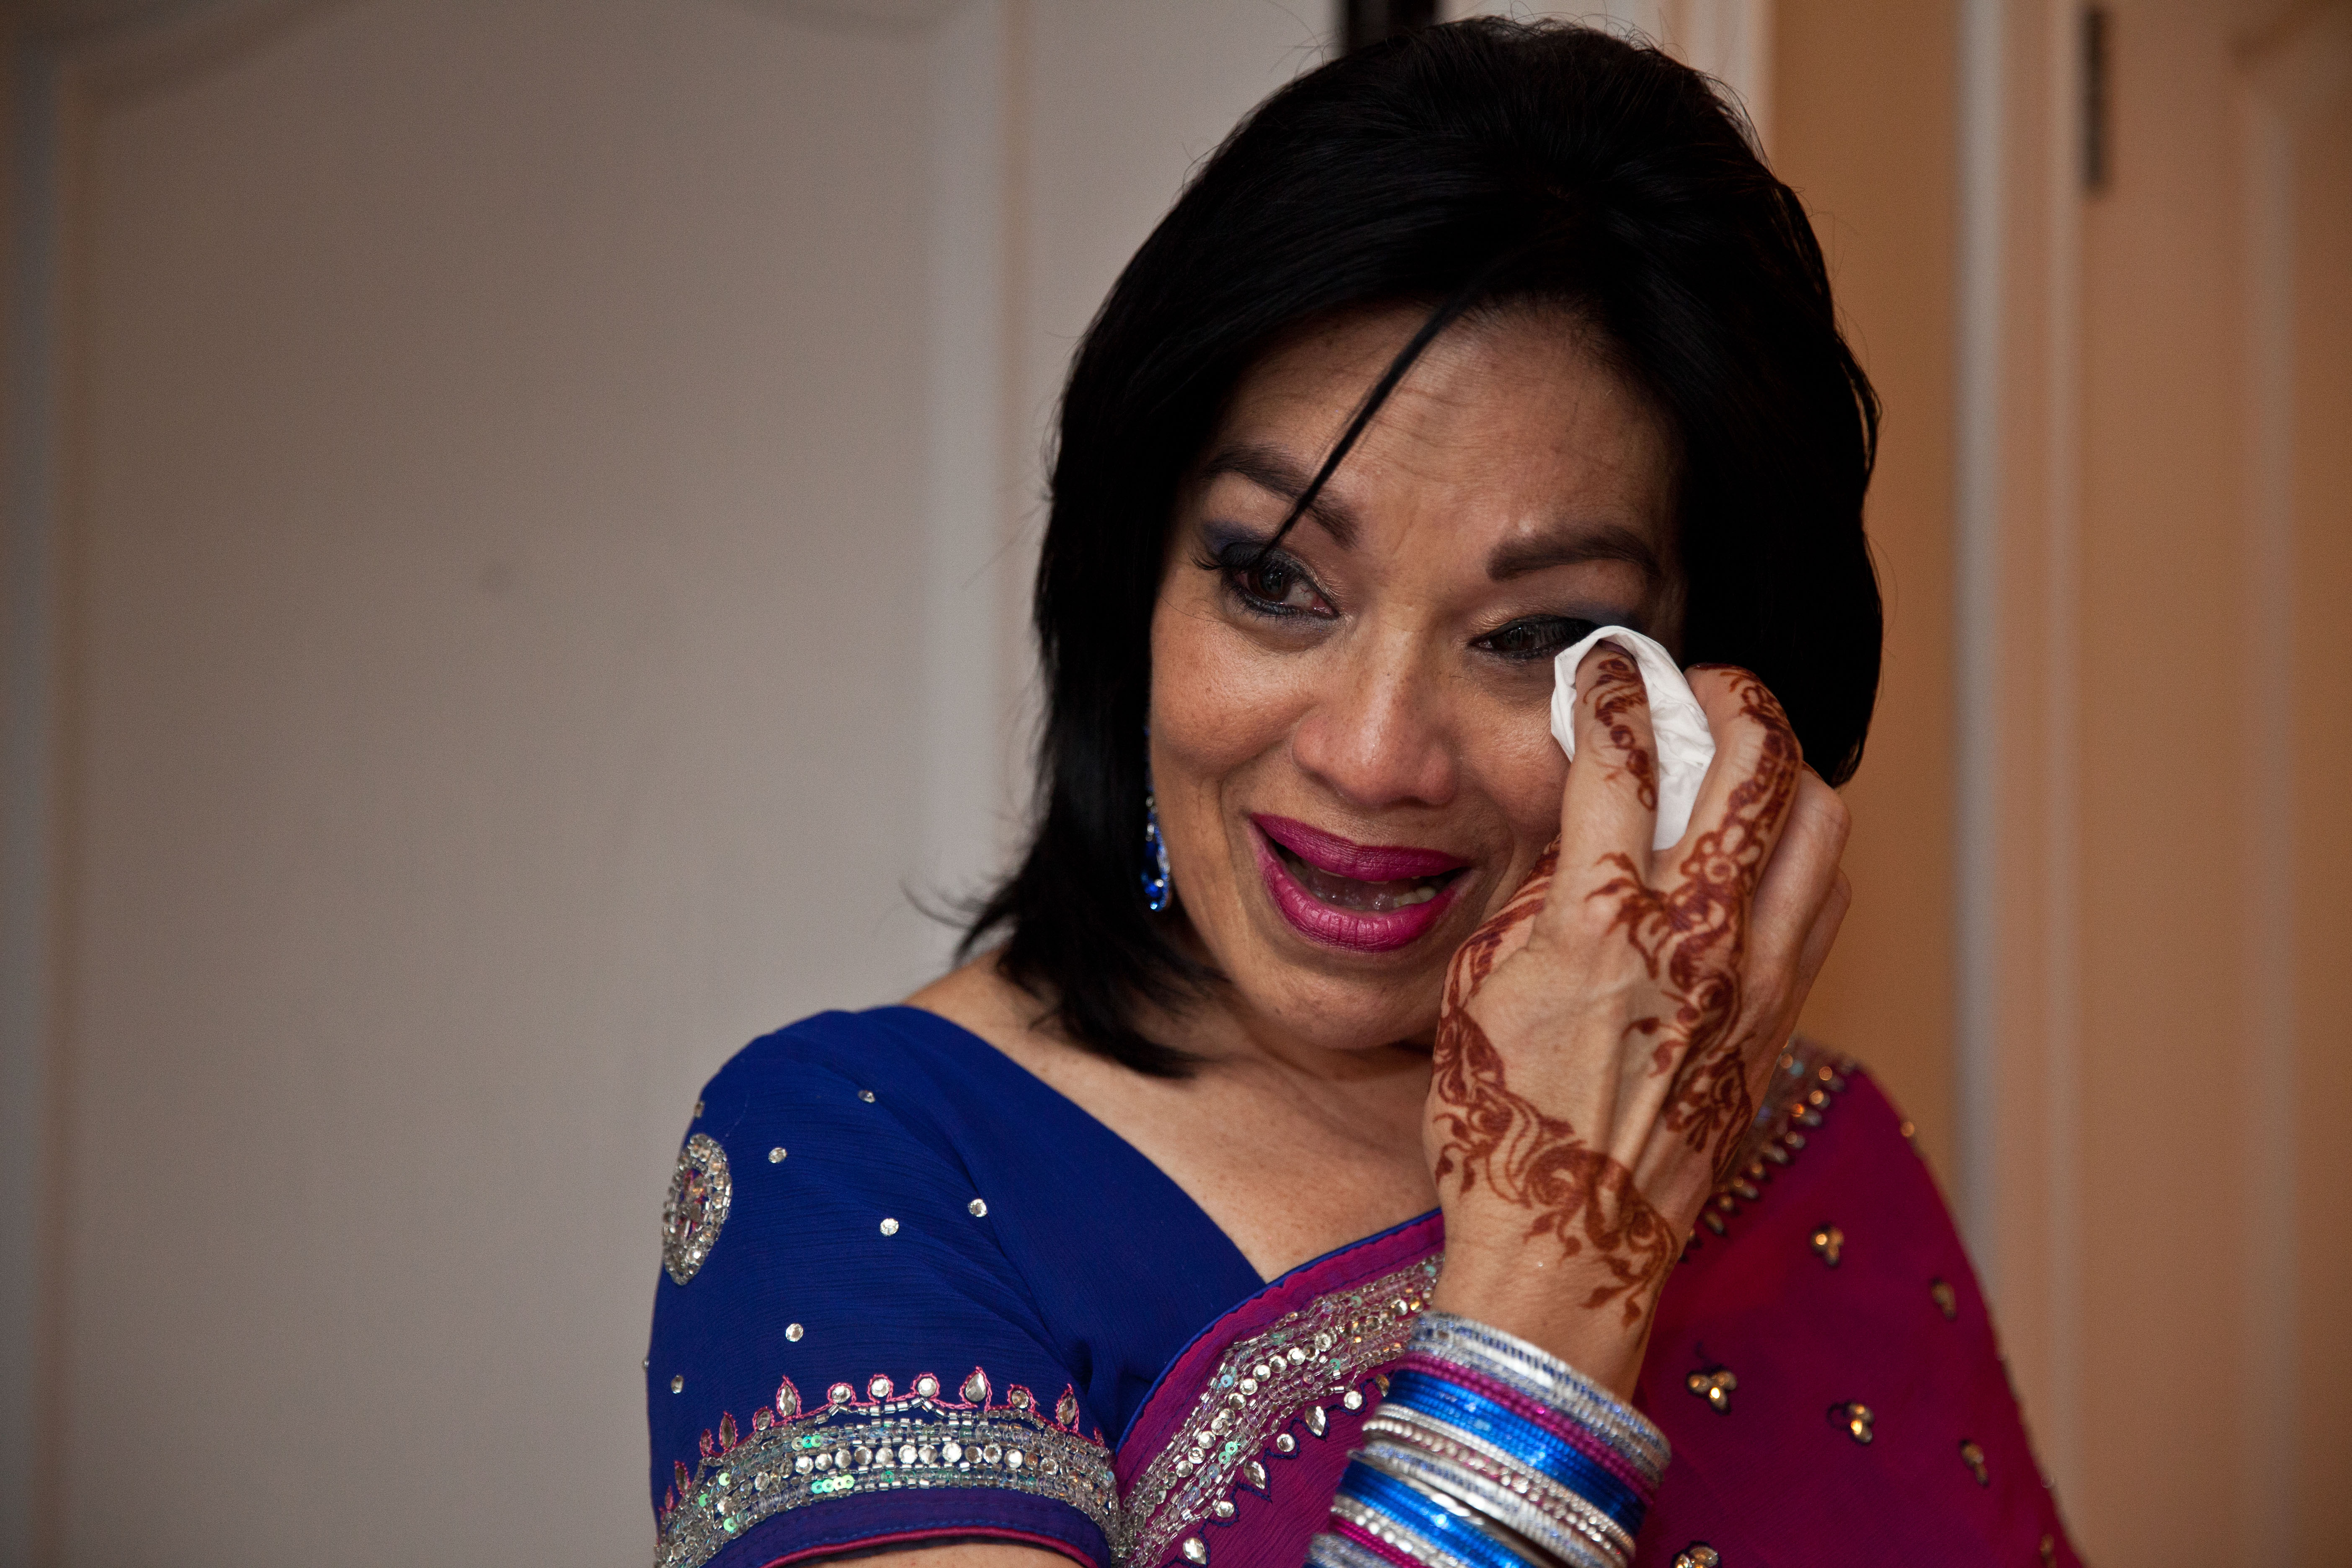 Mother of the bride wearing blue and pink sari wiping tear from her eye as she sees the bride